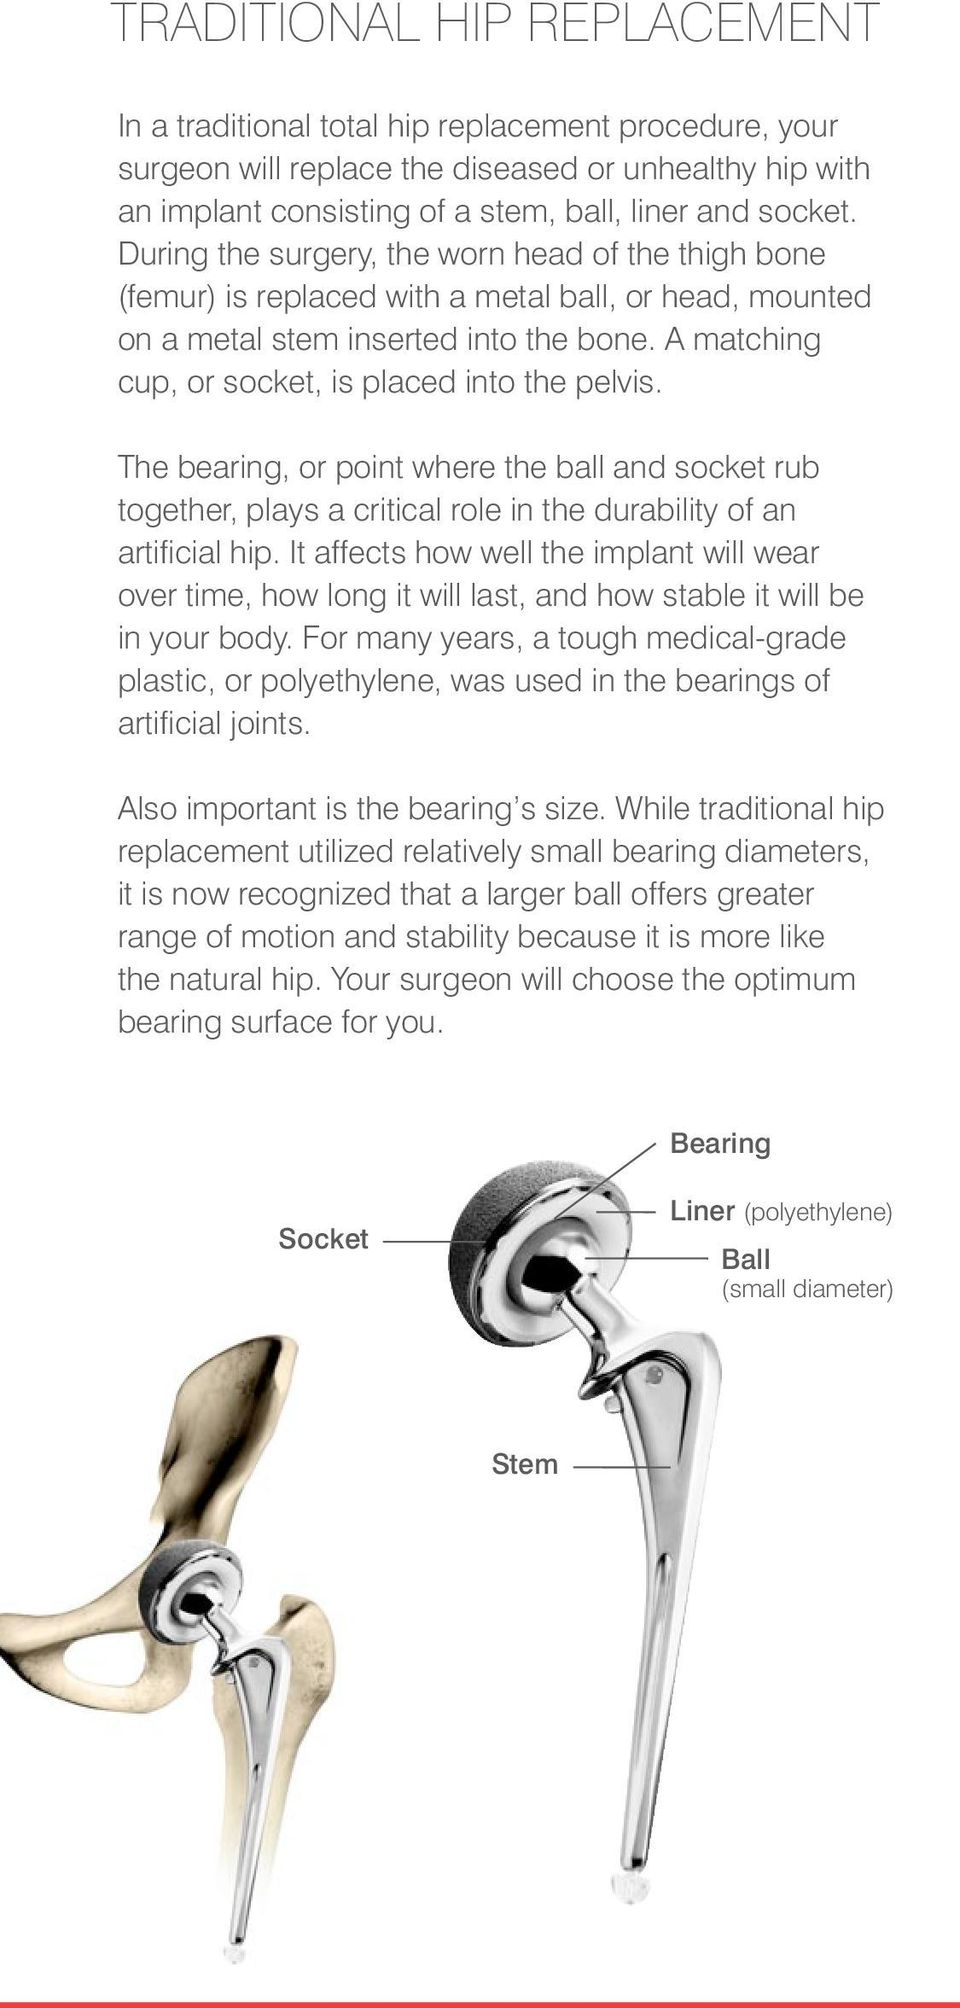 A matching cup, or socket, is placed into the pelvis. The bearing, or point where the ball and socket rub together, plays a critical role in the durability of an artificial hip.